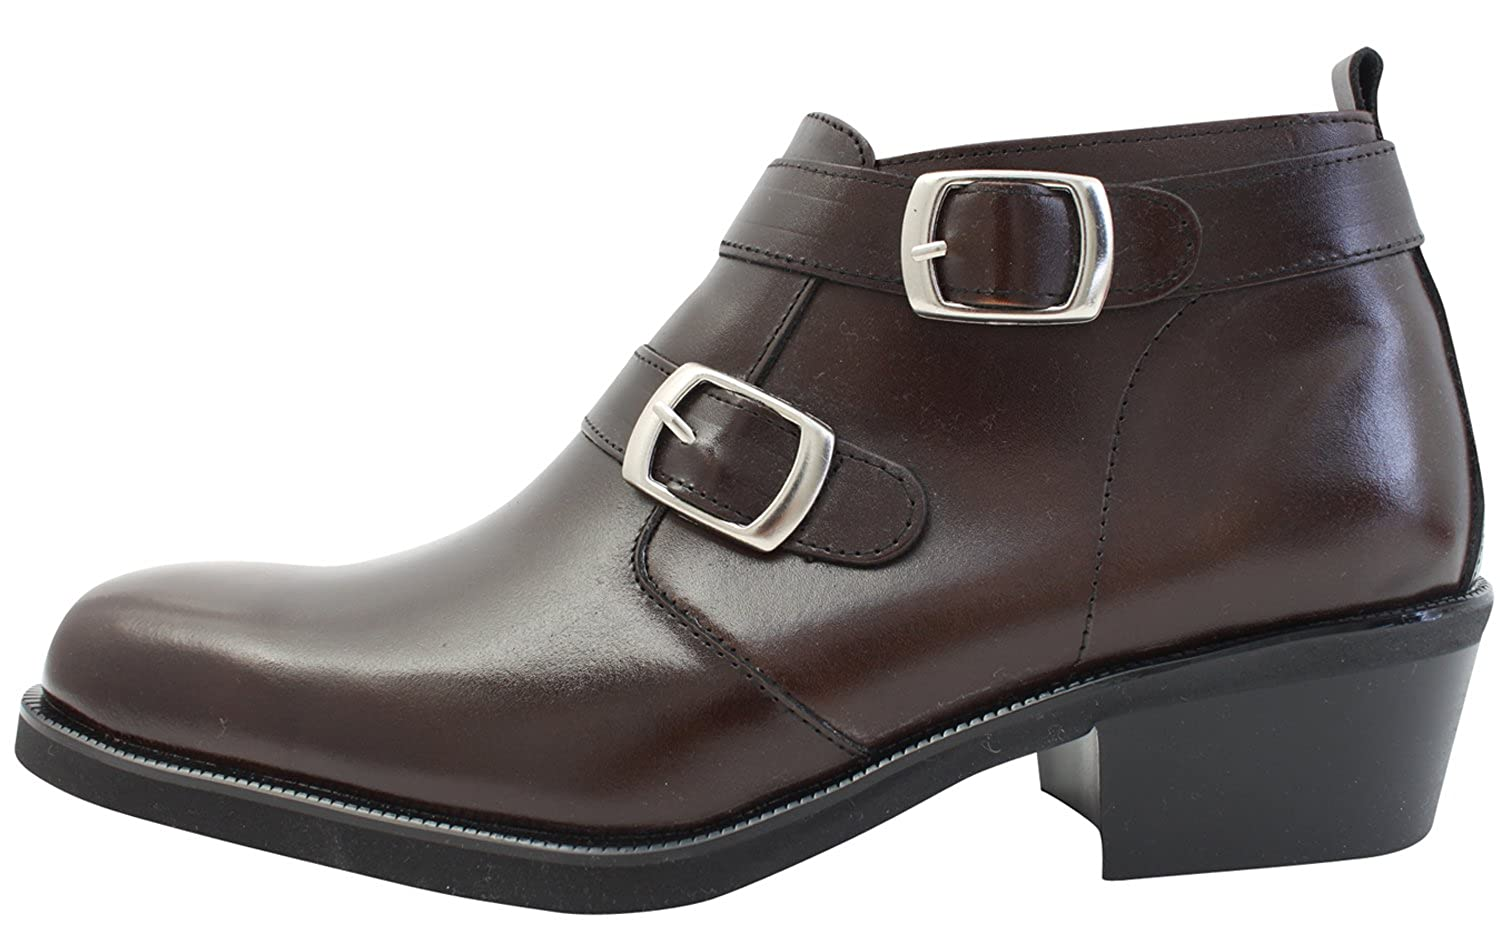 VOVOshoes Men's Leather Formal Casual Ankle Boot Shoes VOVO-017